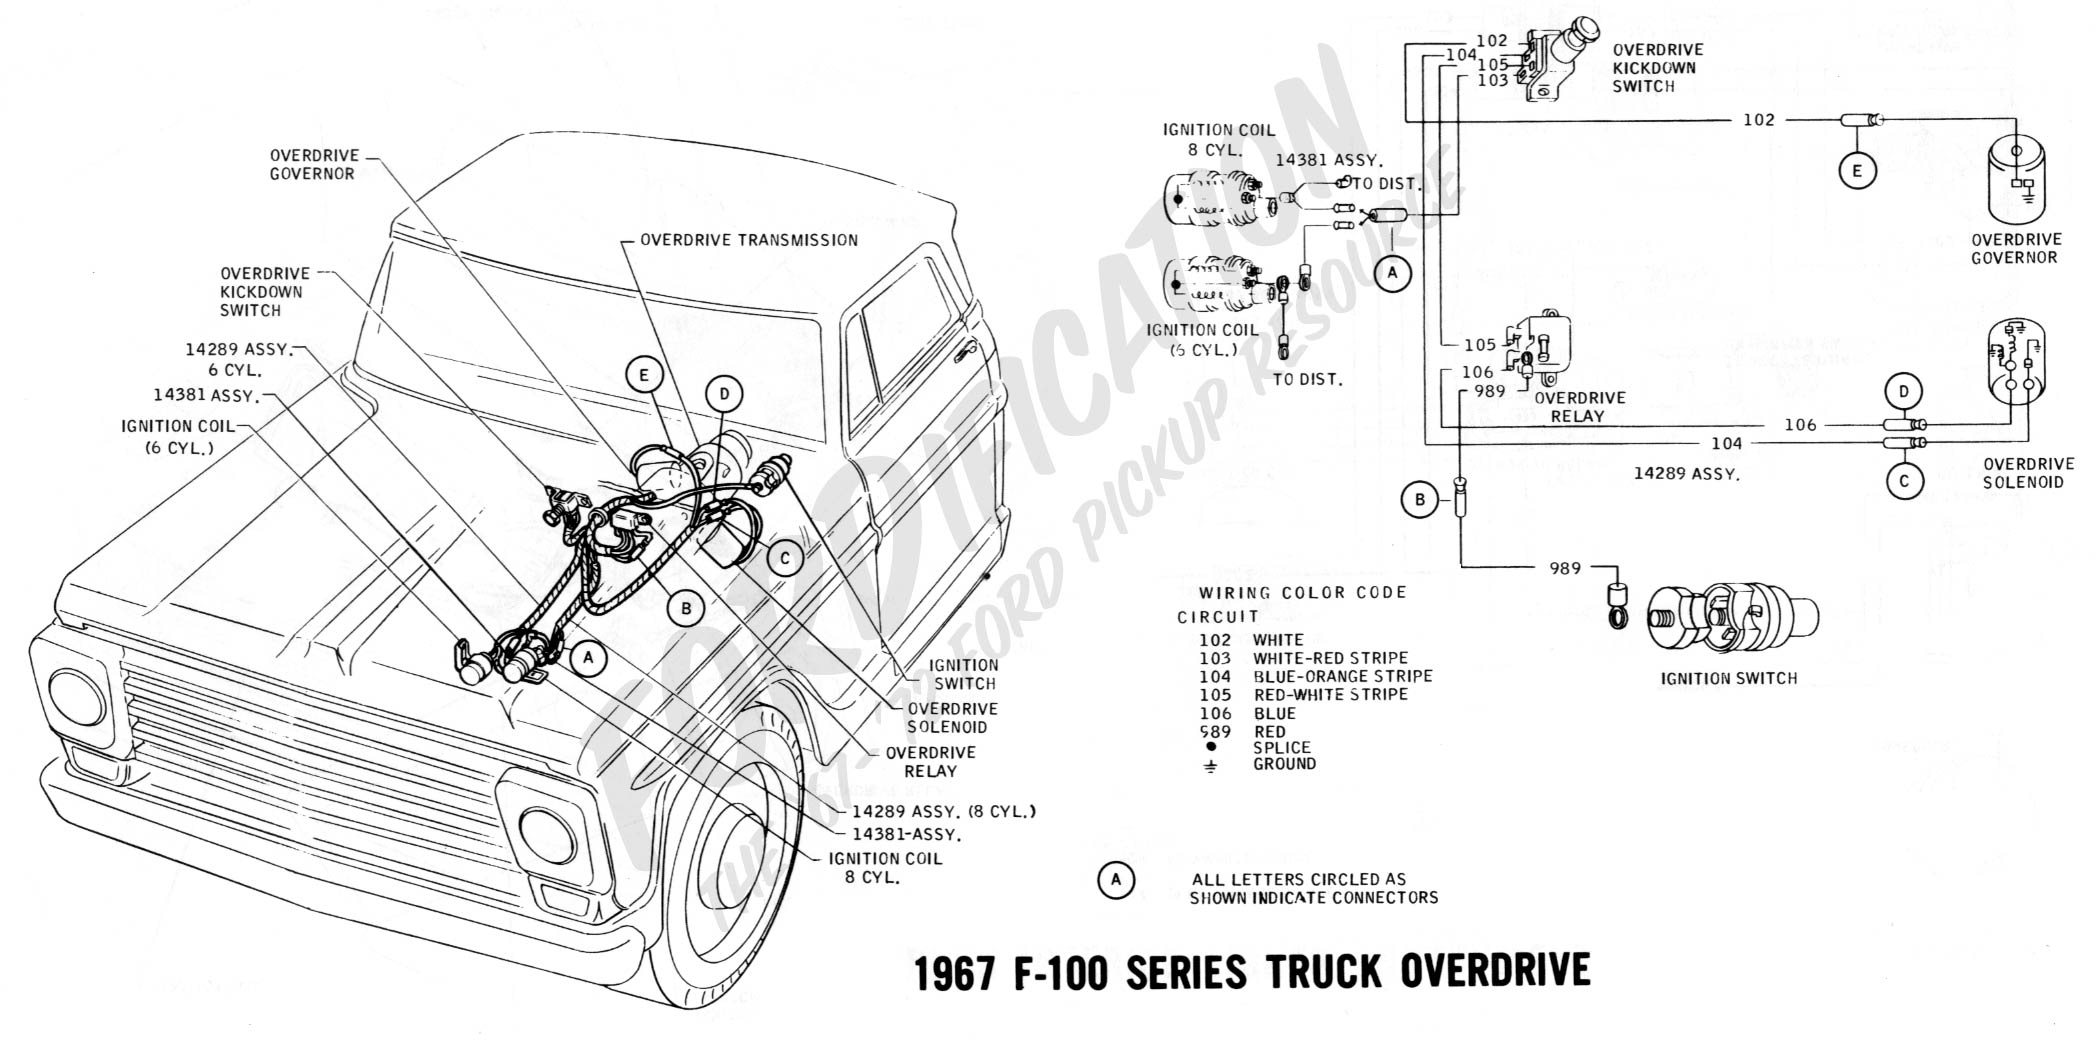 1966 Ford F100 Engine Wiring Diagram Free Picture 1973 Dash Illumination Harness Simple Diagrams1966 Schema